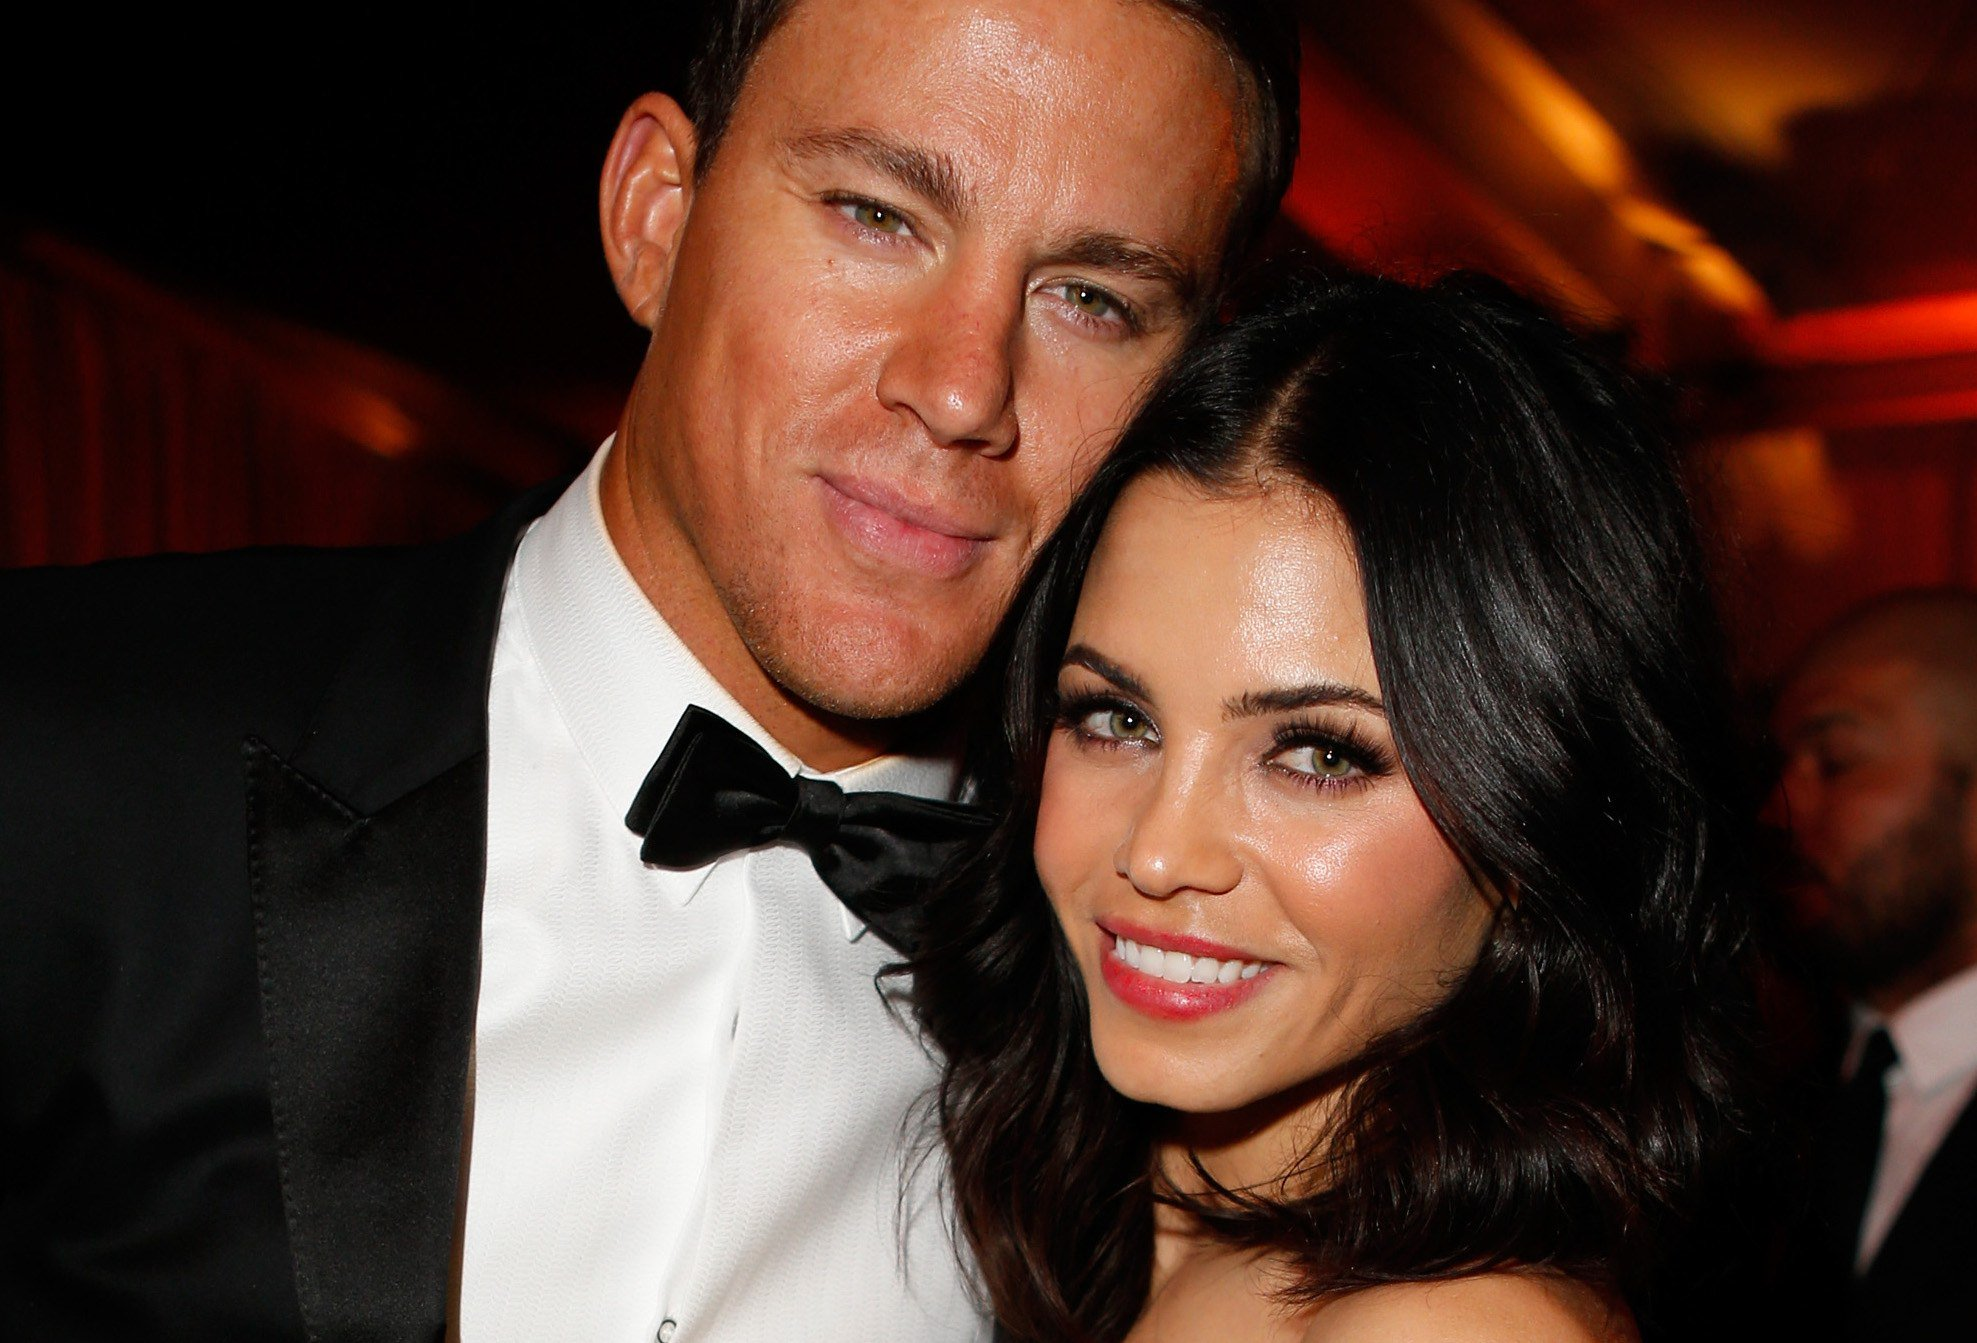 Jenna Dewan Tatum says Channing was basically naked when he asked her out: https://t.co/6gXZqSa4vQ https://t.co/Y5vqik0xN9